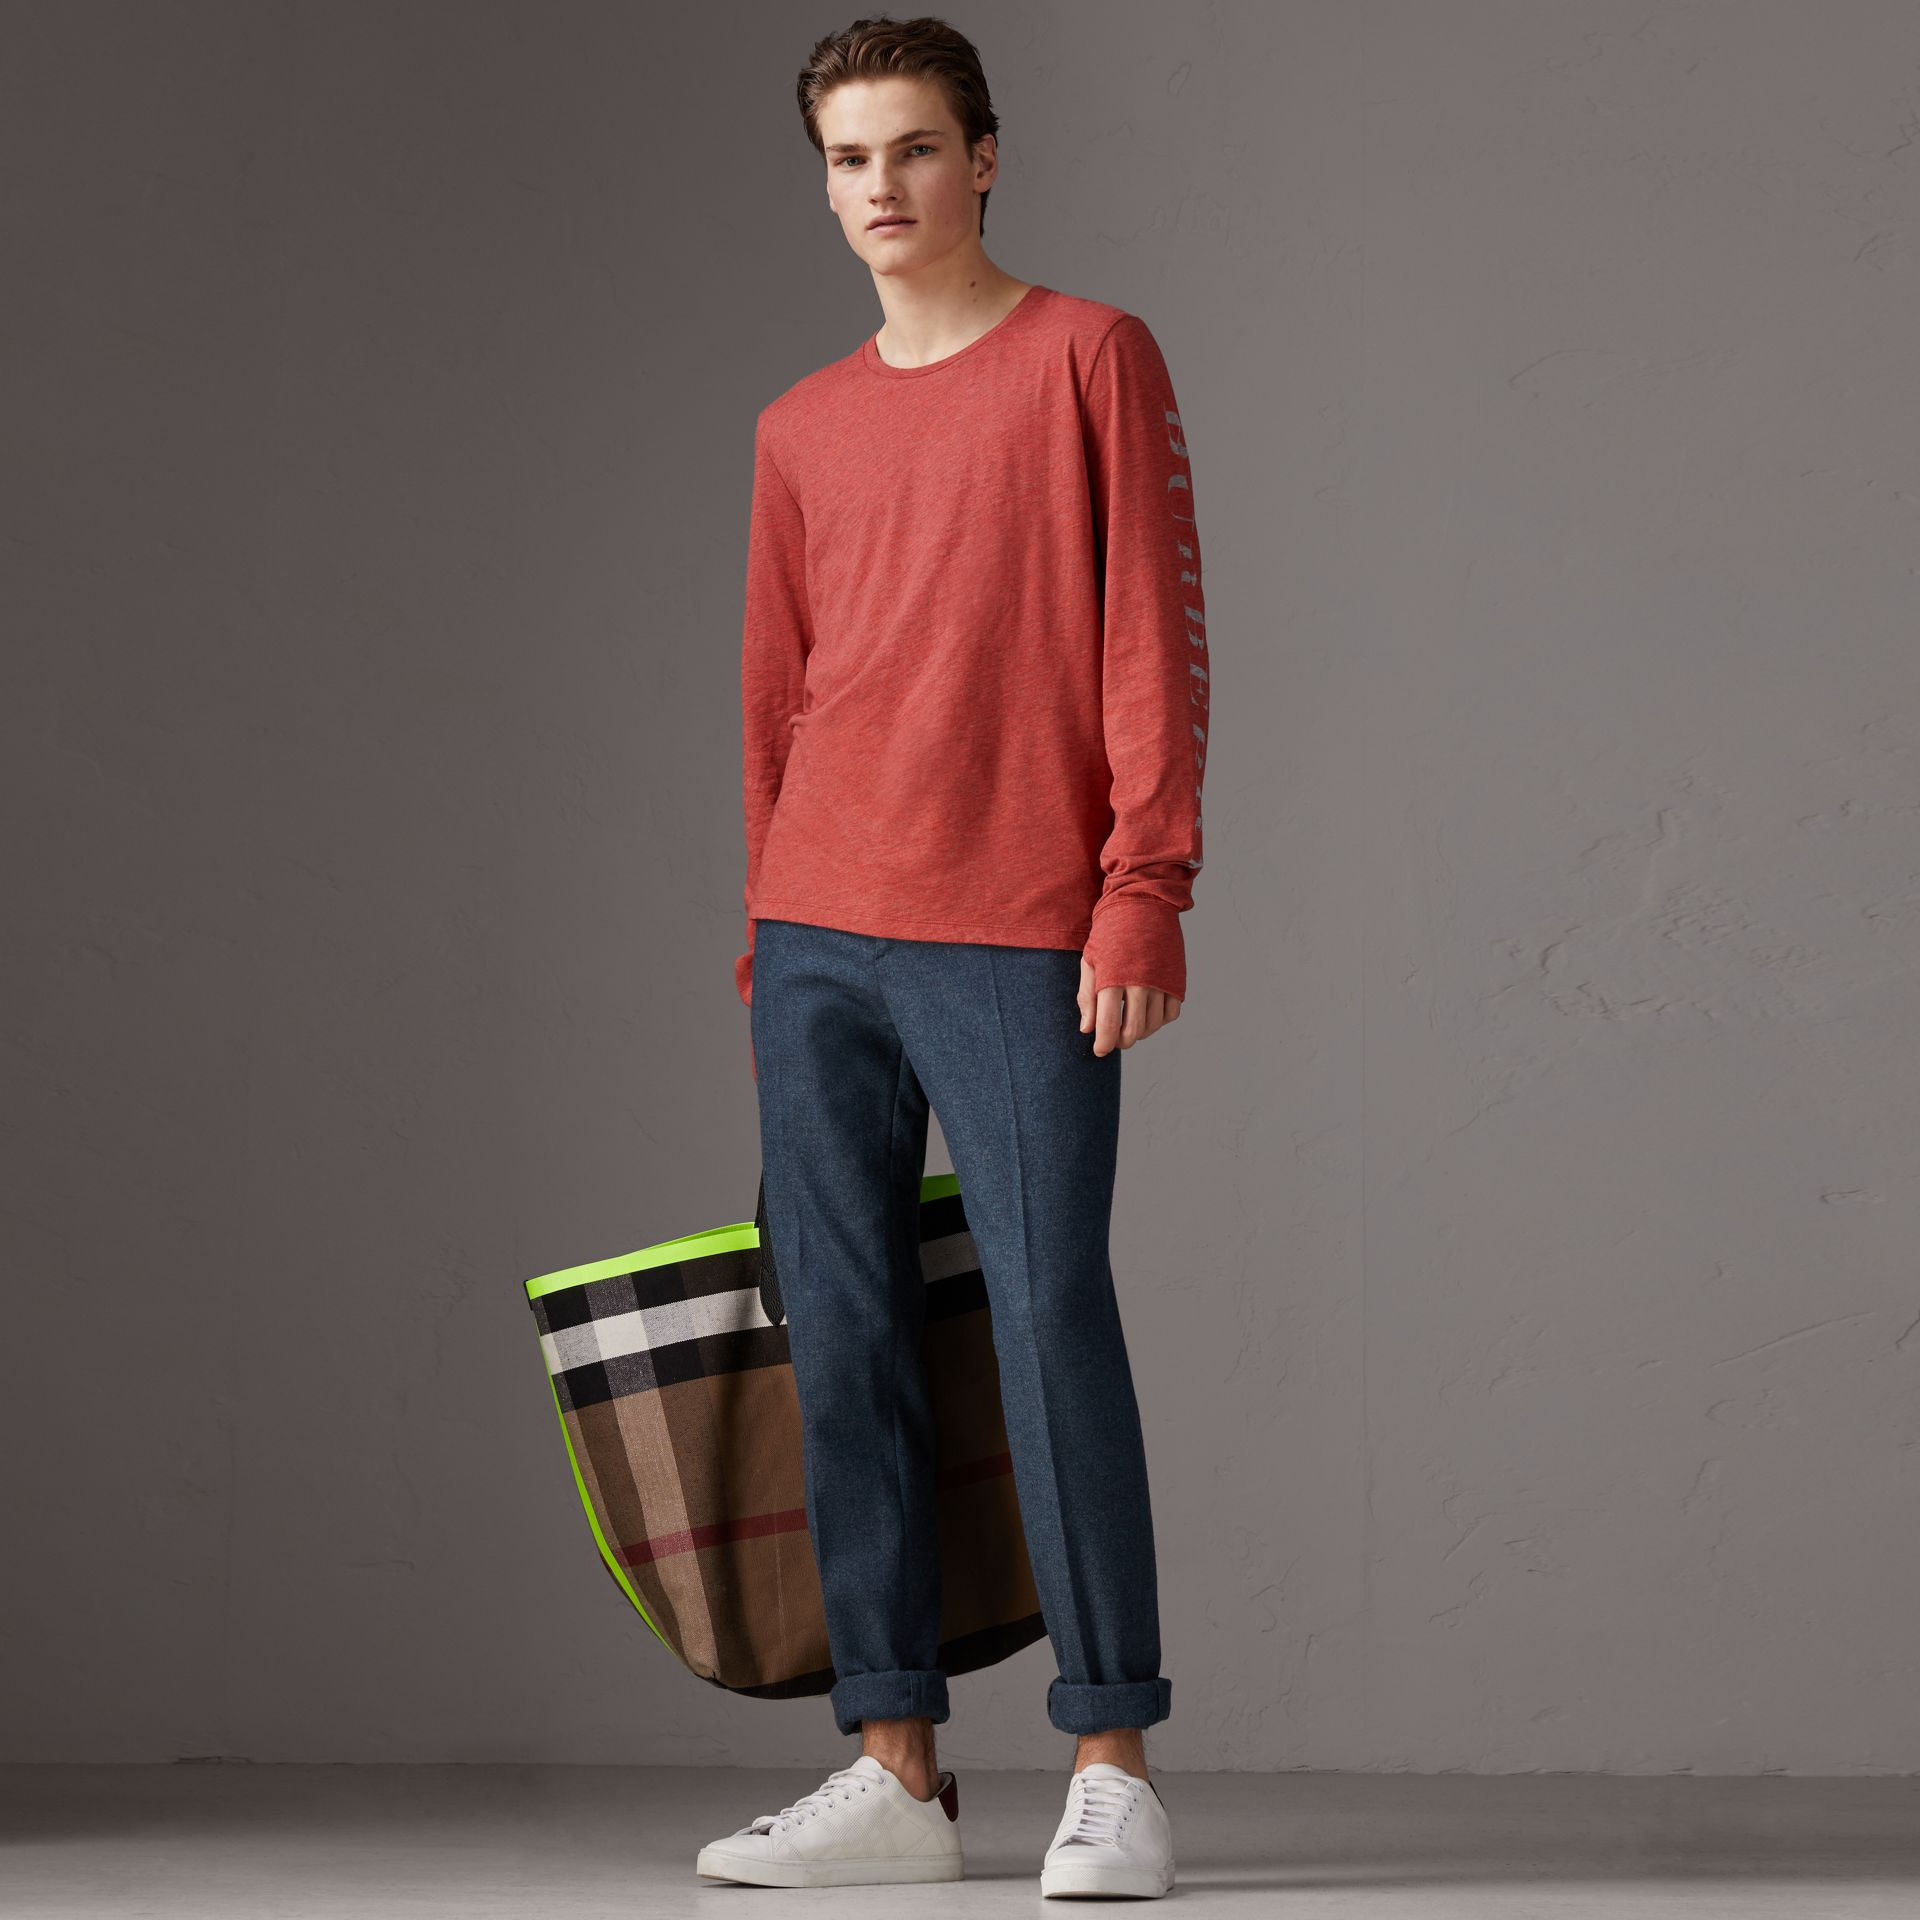 Devoré Jersey Top in Bright Red Melange - Men | Burberry - gallery image 0